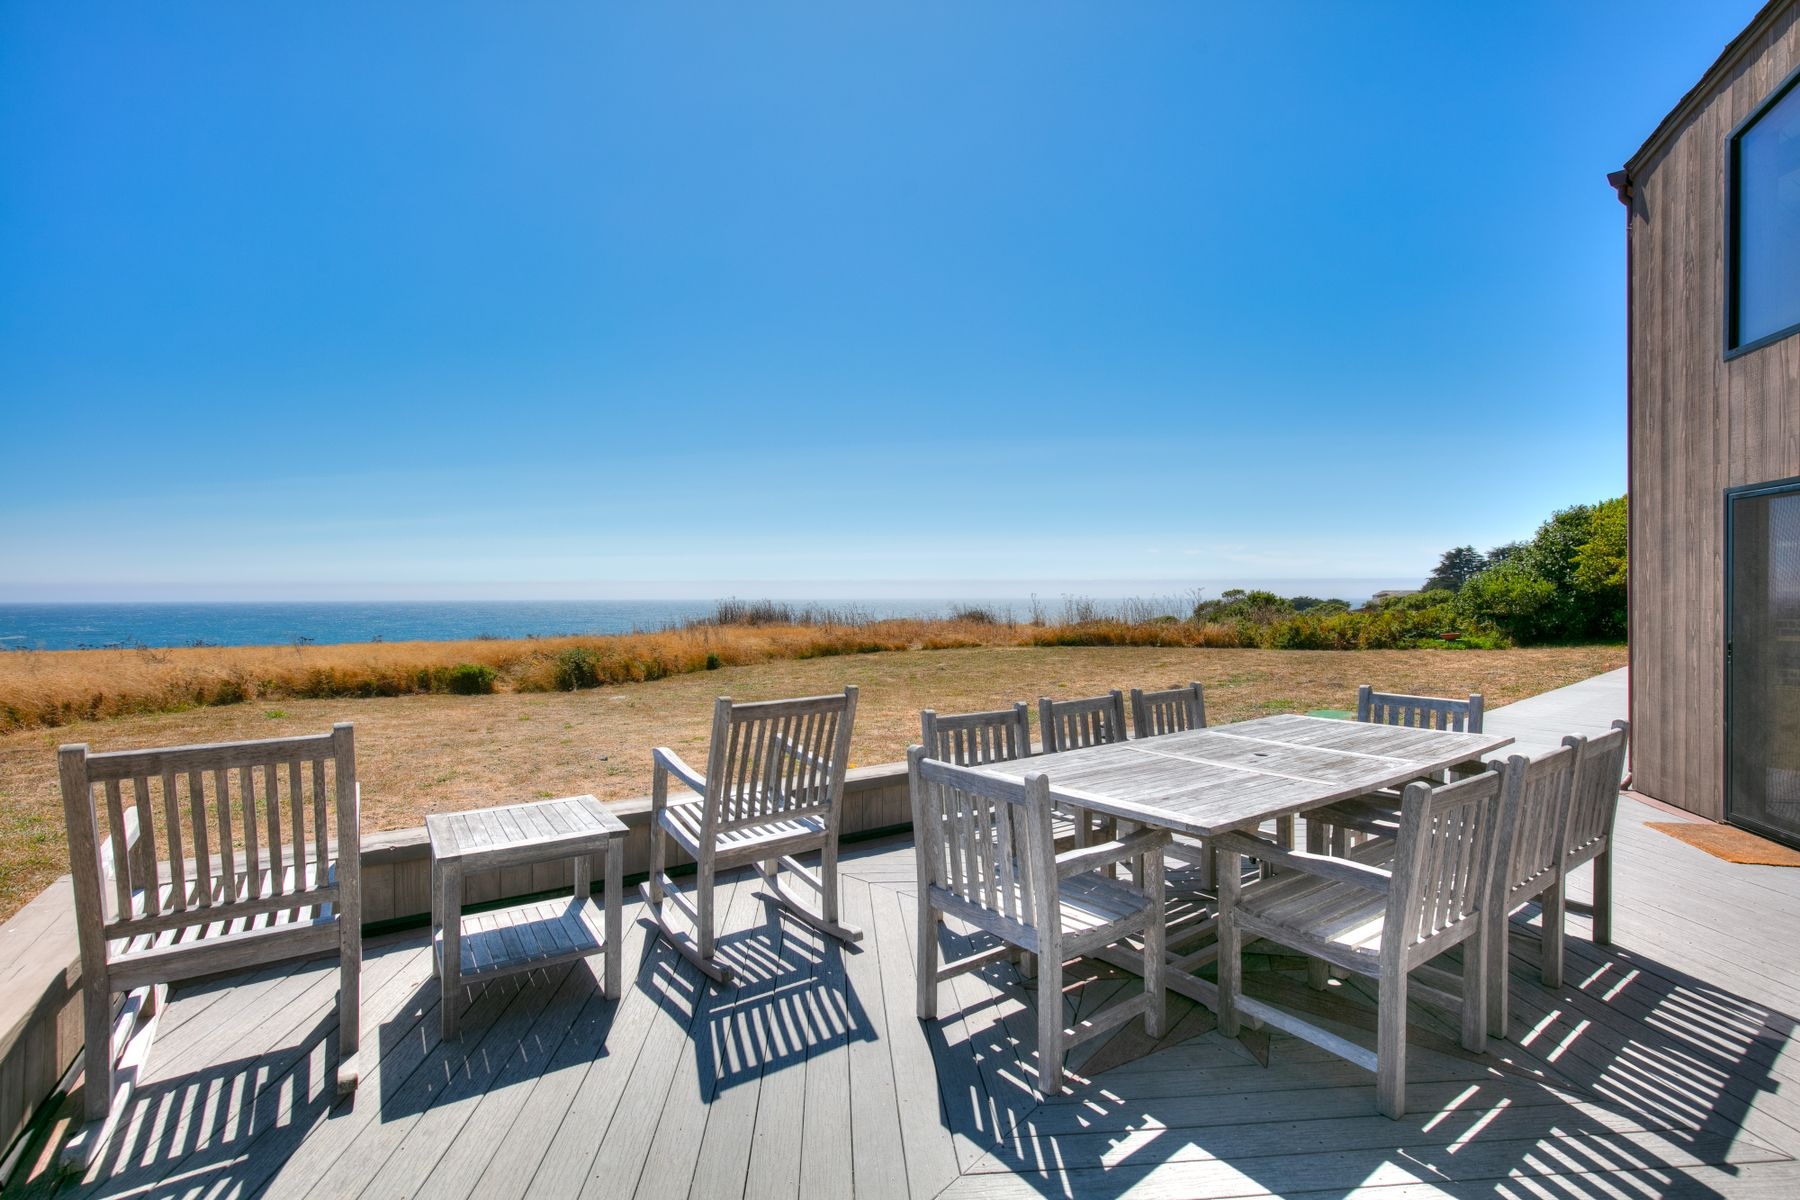 Single Family Homes for Sale at 36552 Sculpture Point Drive 36552 Sculpture Point Dr The Sea Ranch, California 95497 United States